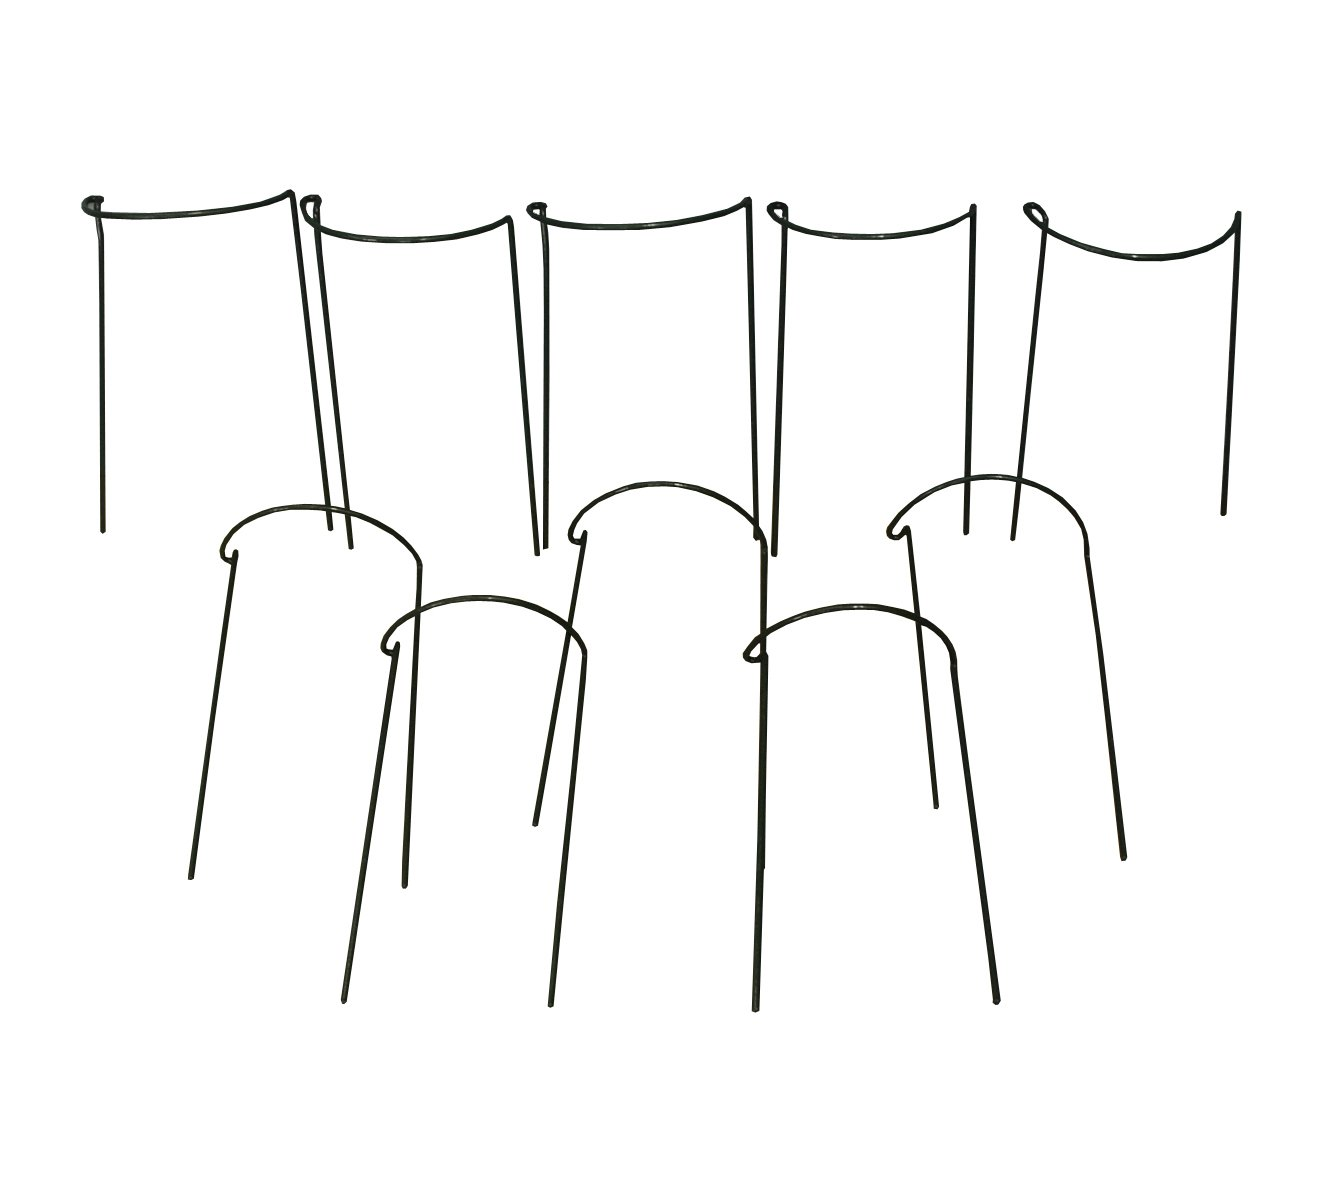 Selections Gard n Hoop Plant Support System 20 x 35 Centimeter (Pack of 10)